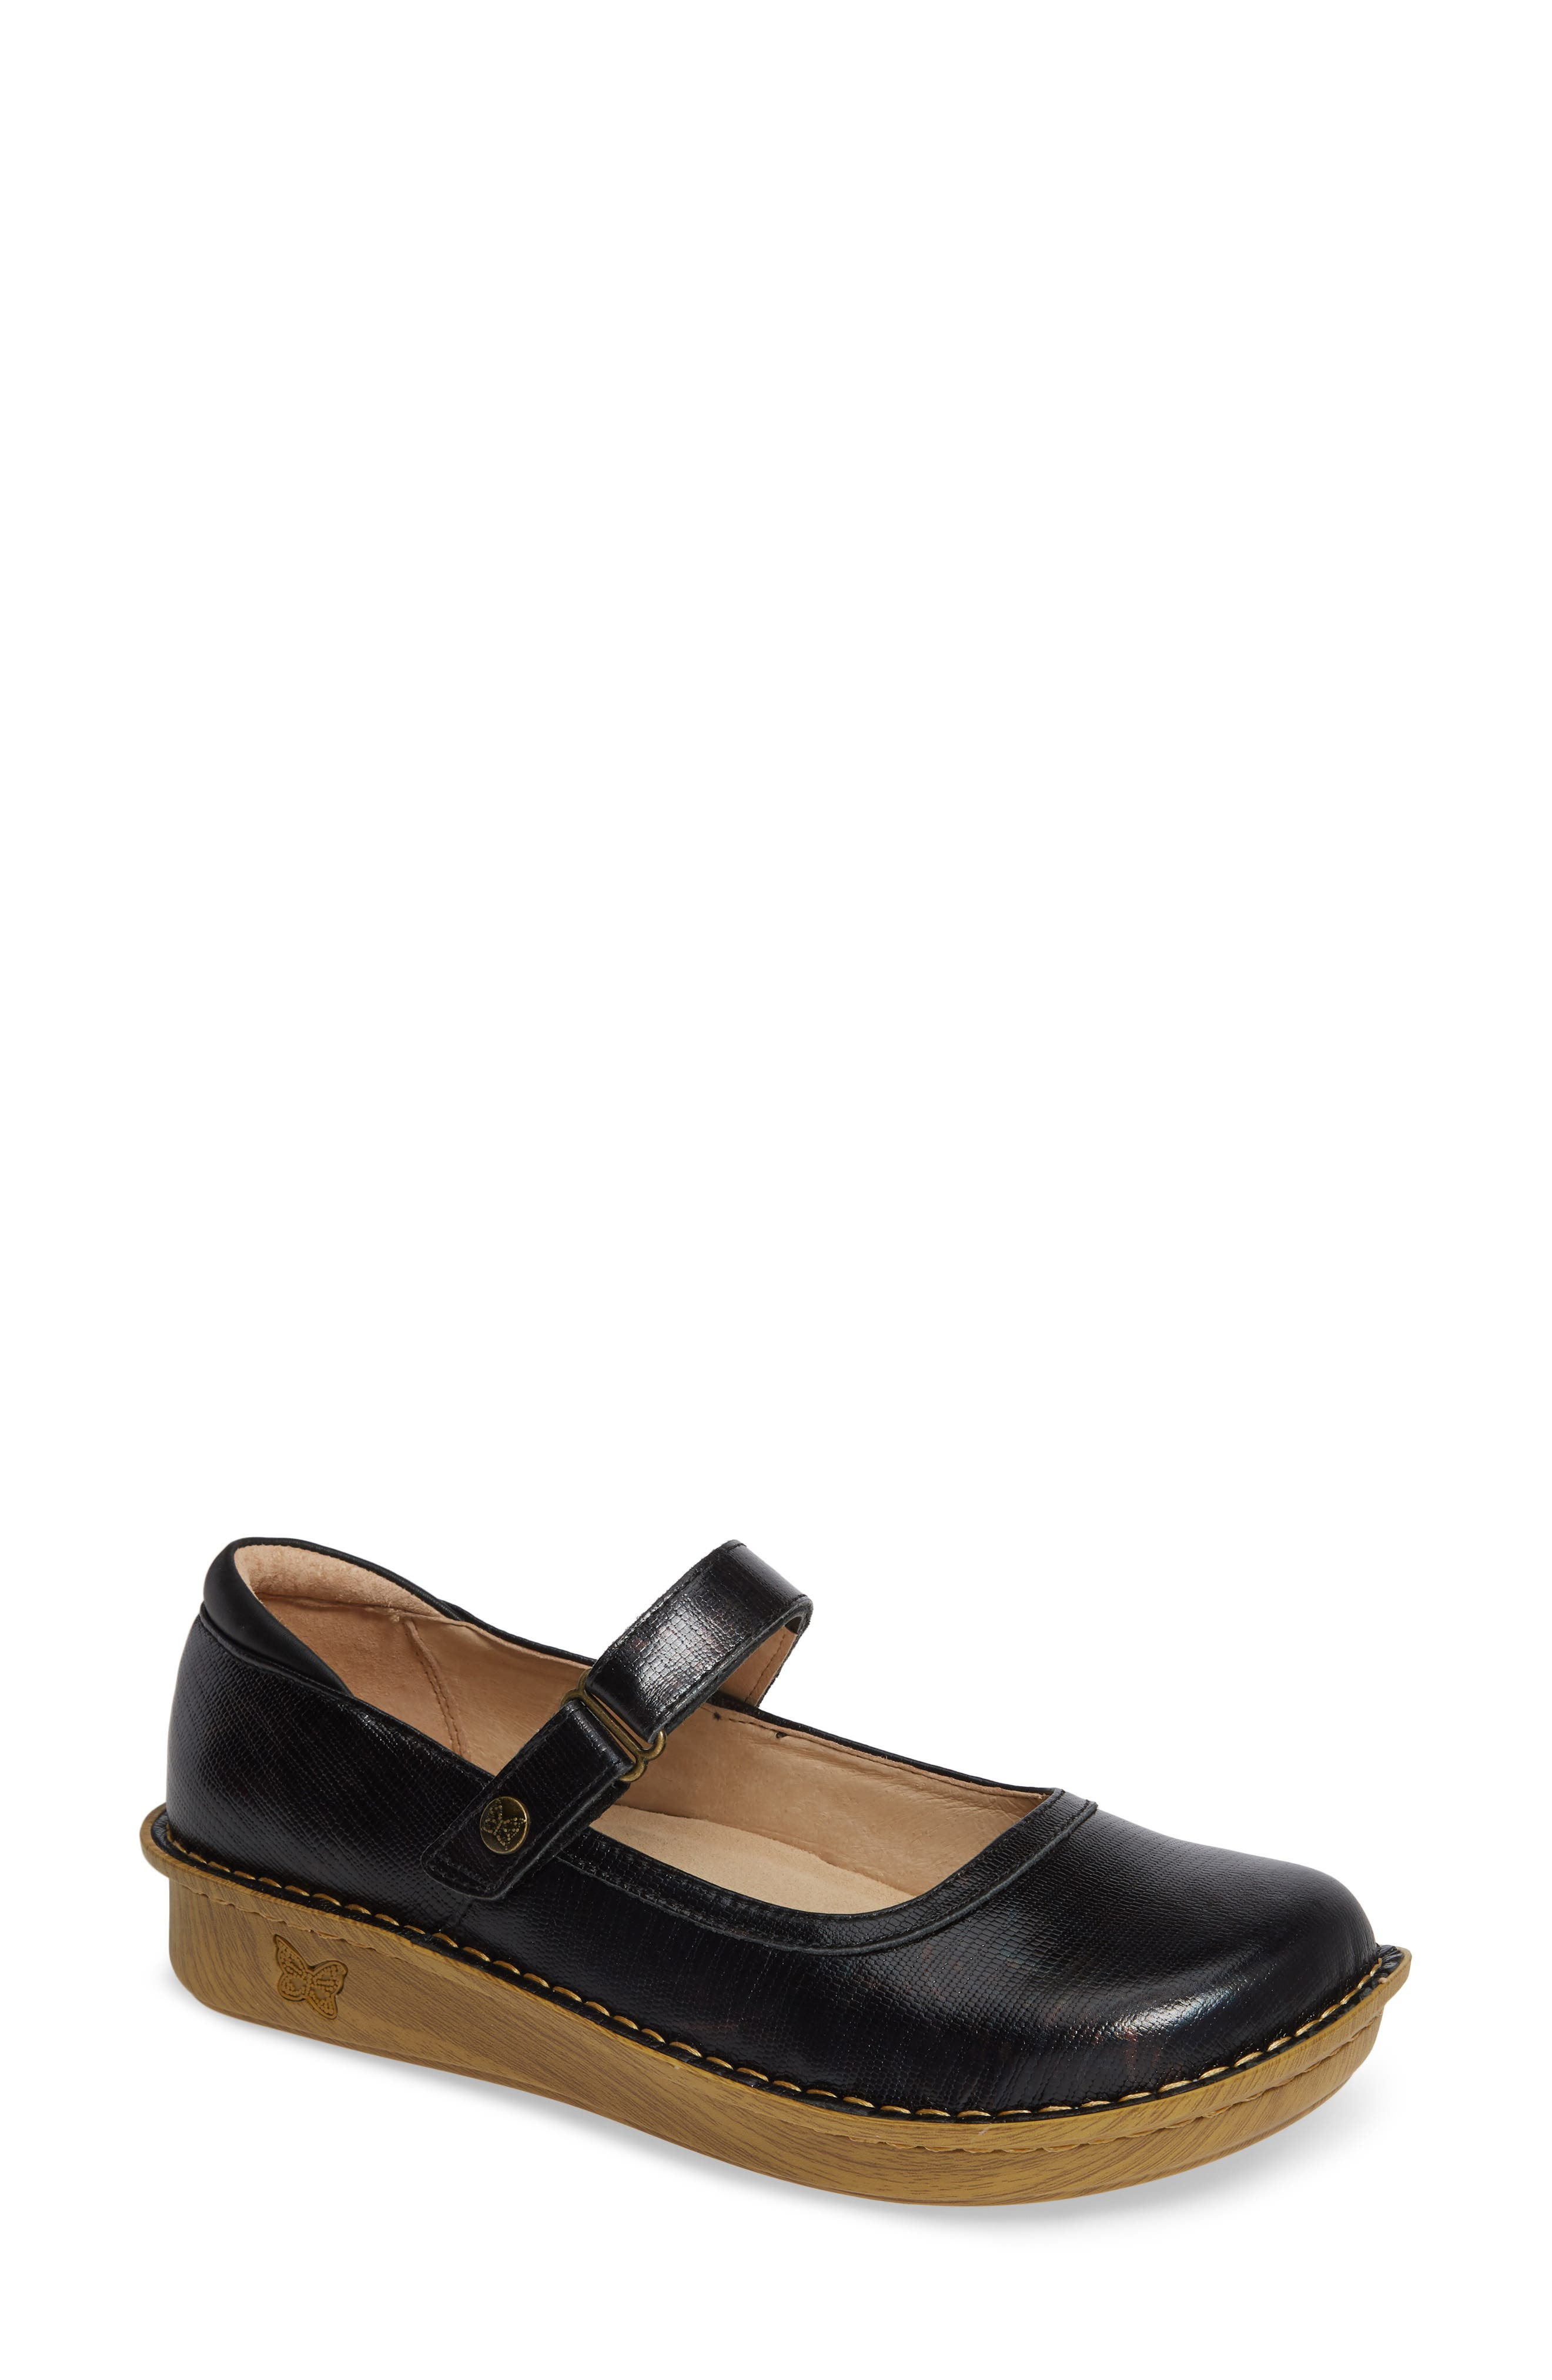 'Belle' Slip-On,                         Main,                         color, TIDAL LEATHER